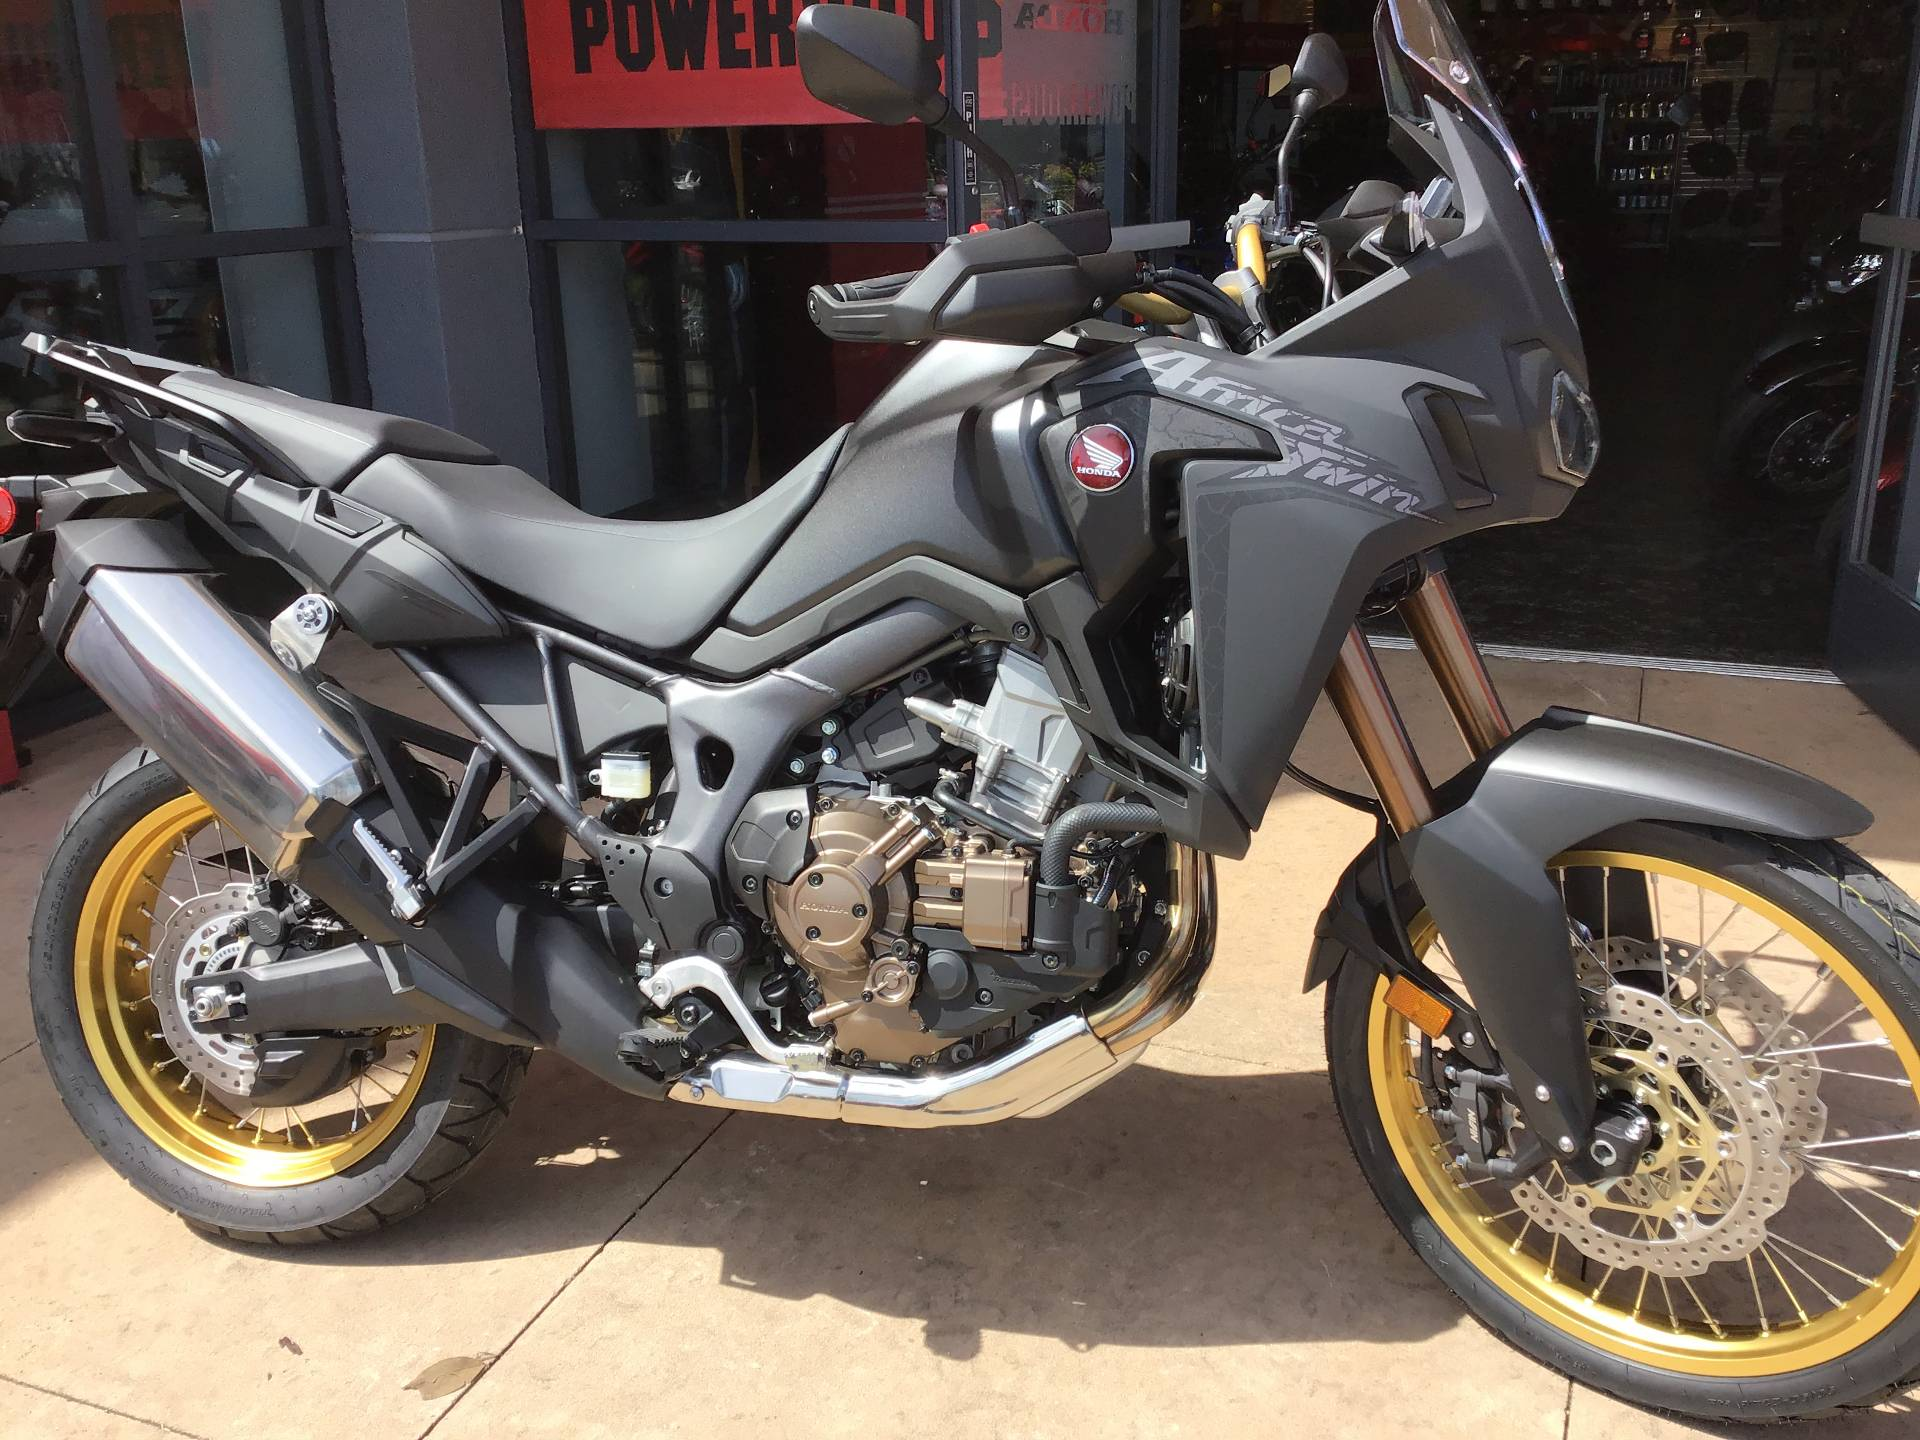 New 2019 Honda Africa Twin Dct For Sale Specs Photos Price Huntington Beach Ca Matte Black Metallic M2709 0142